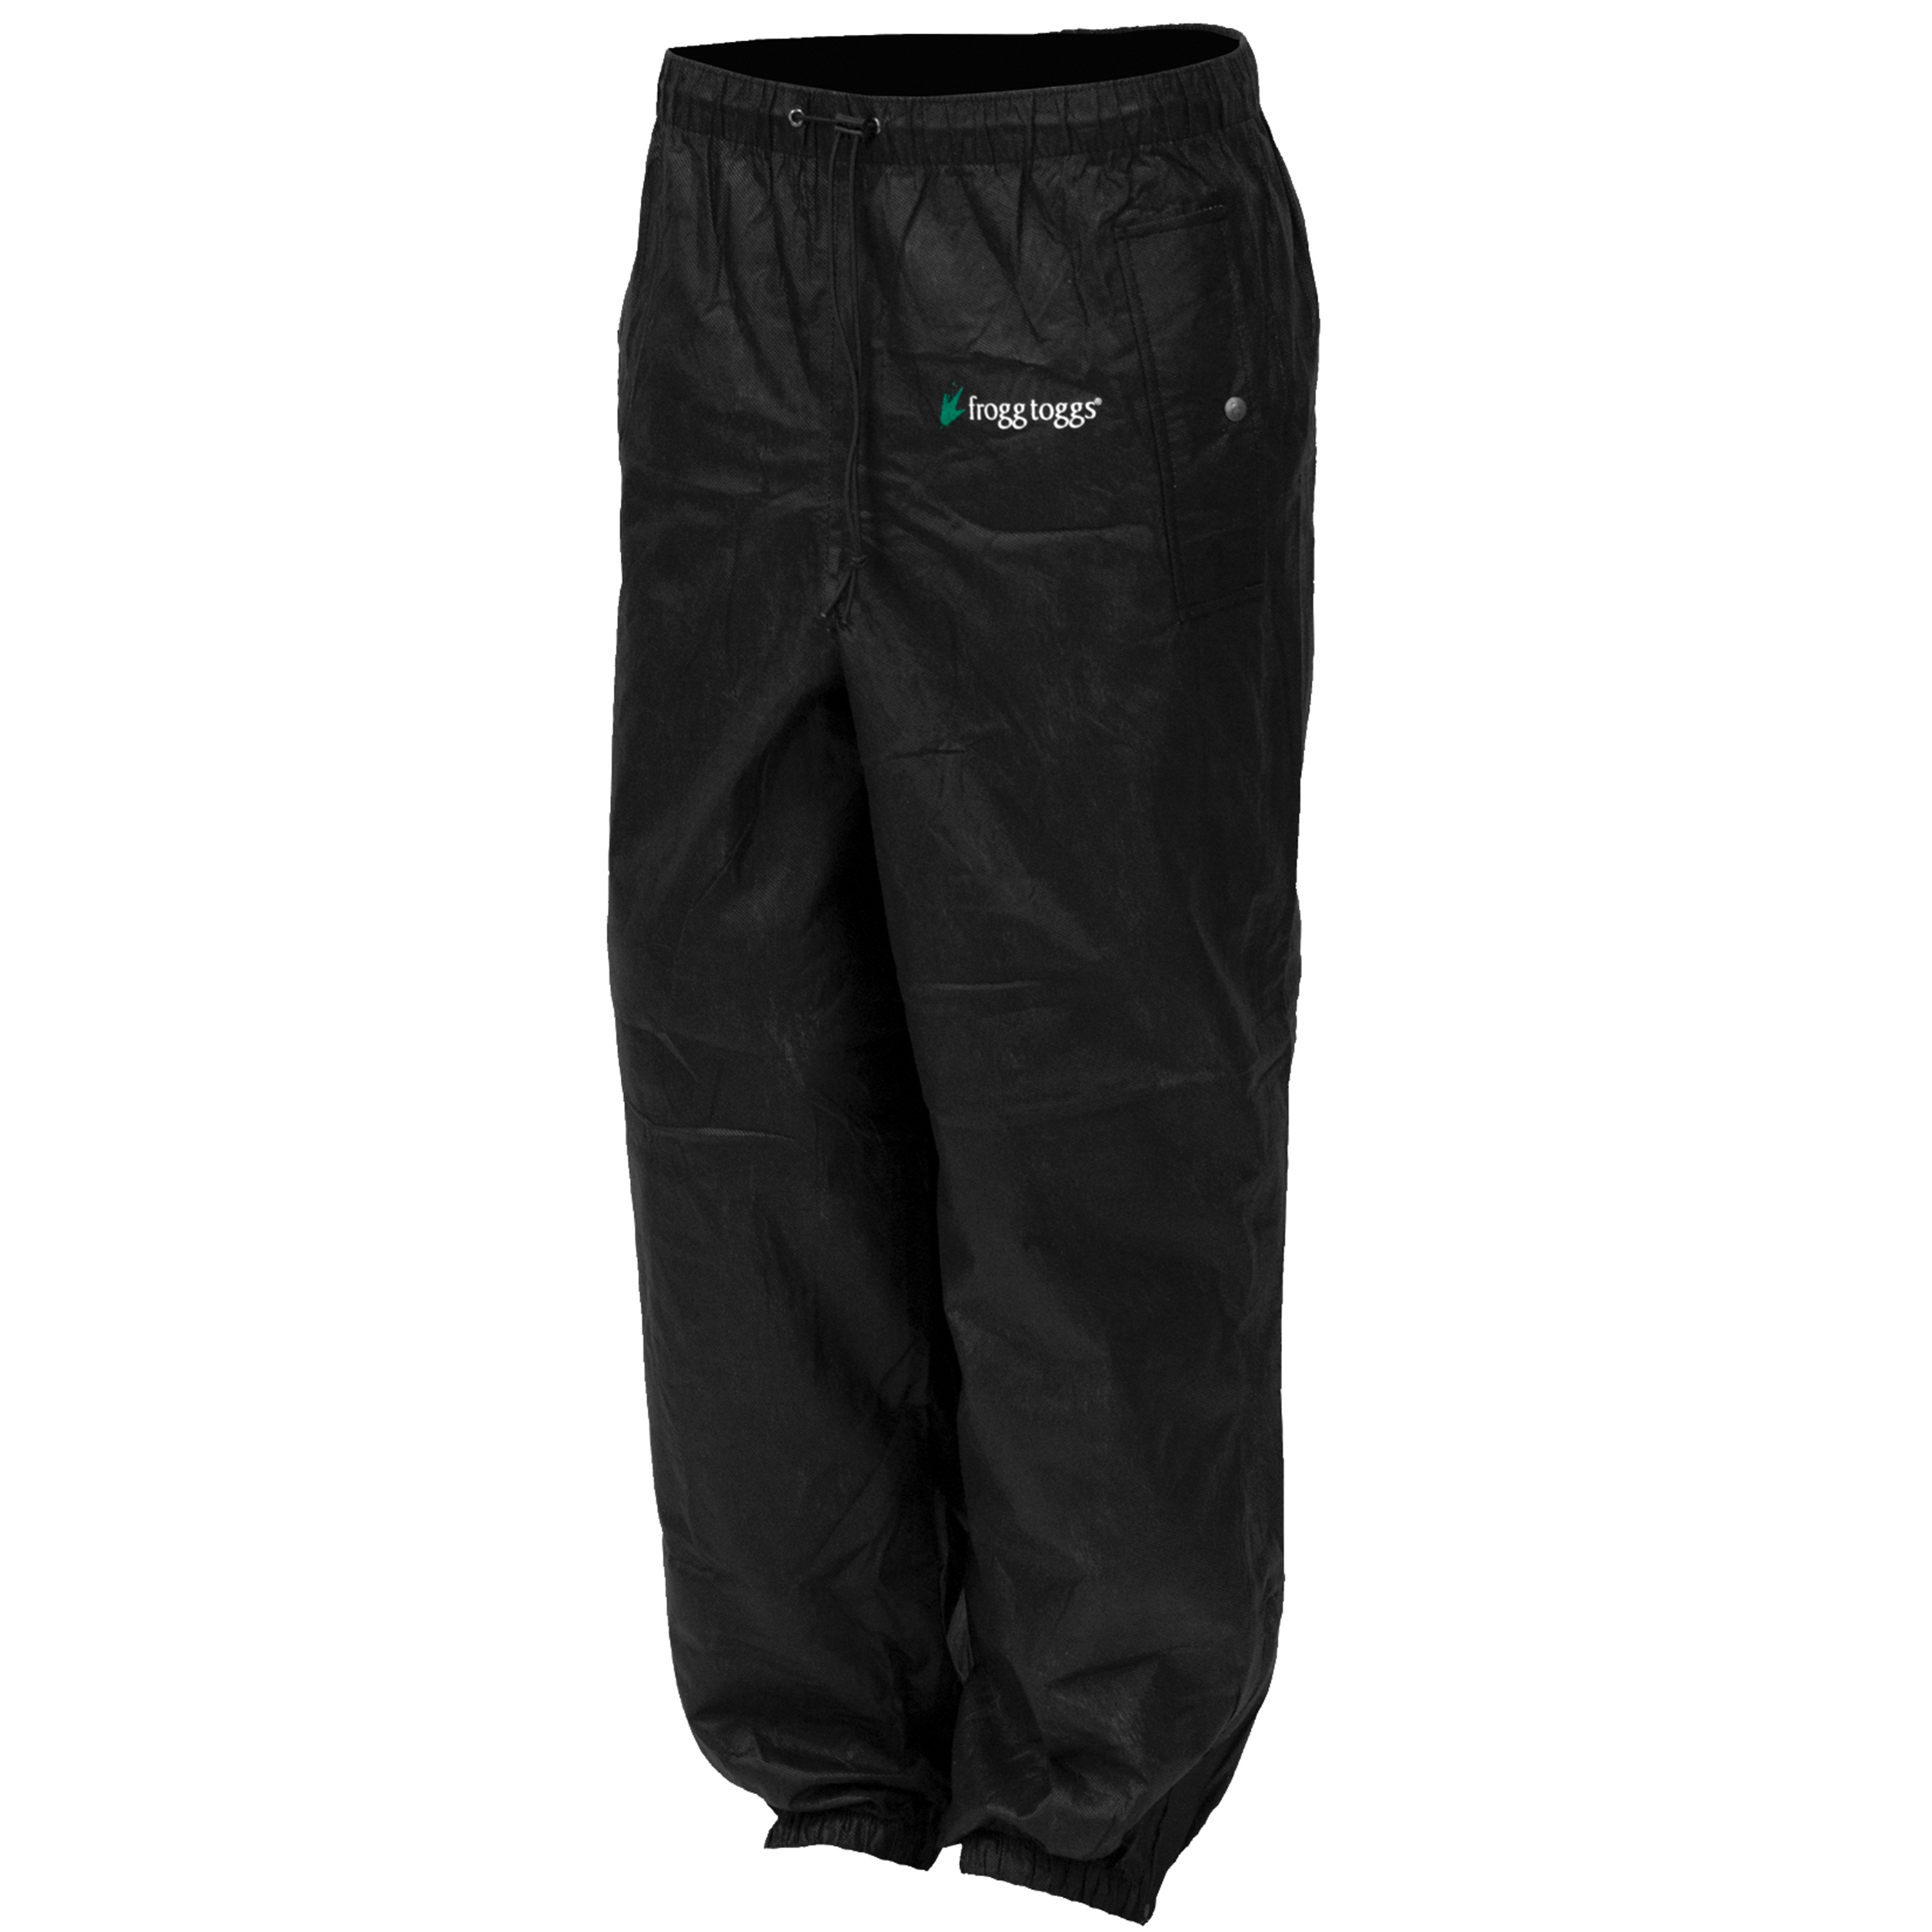 Pro Action Pant | Black | Size Lg by Frogg Toggs